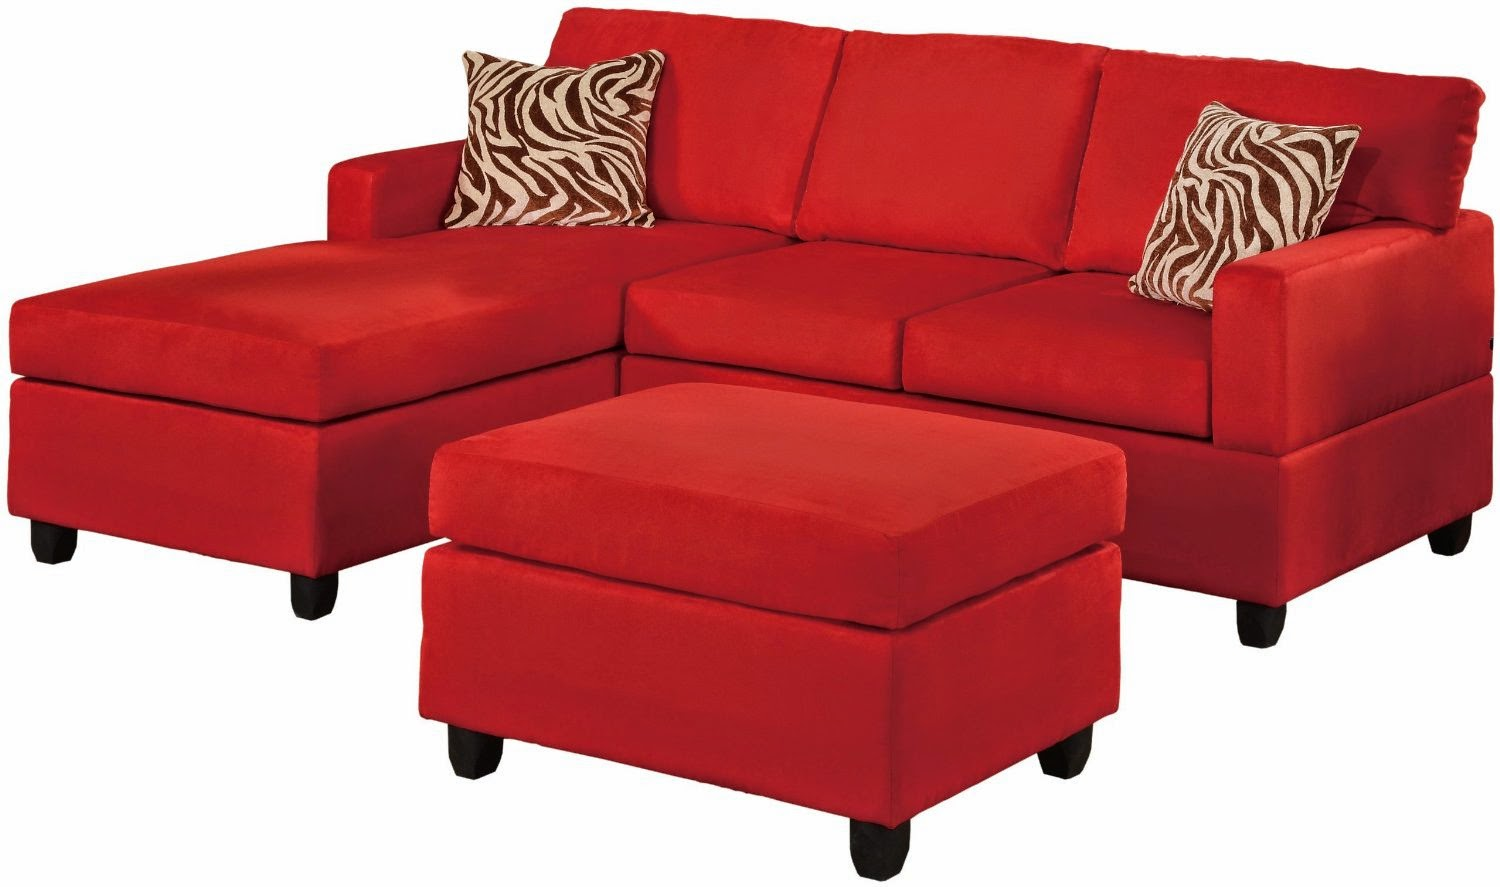 New Red Couch Set